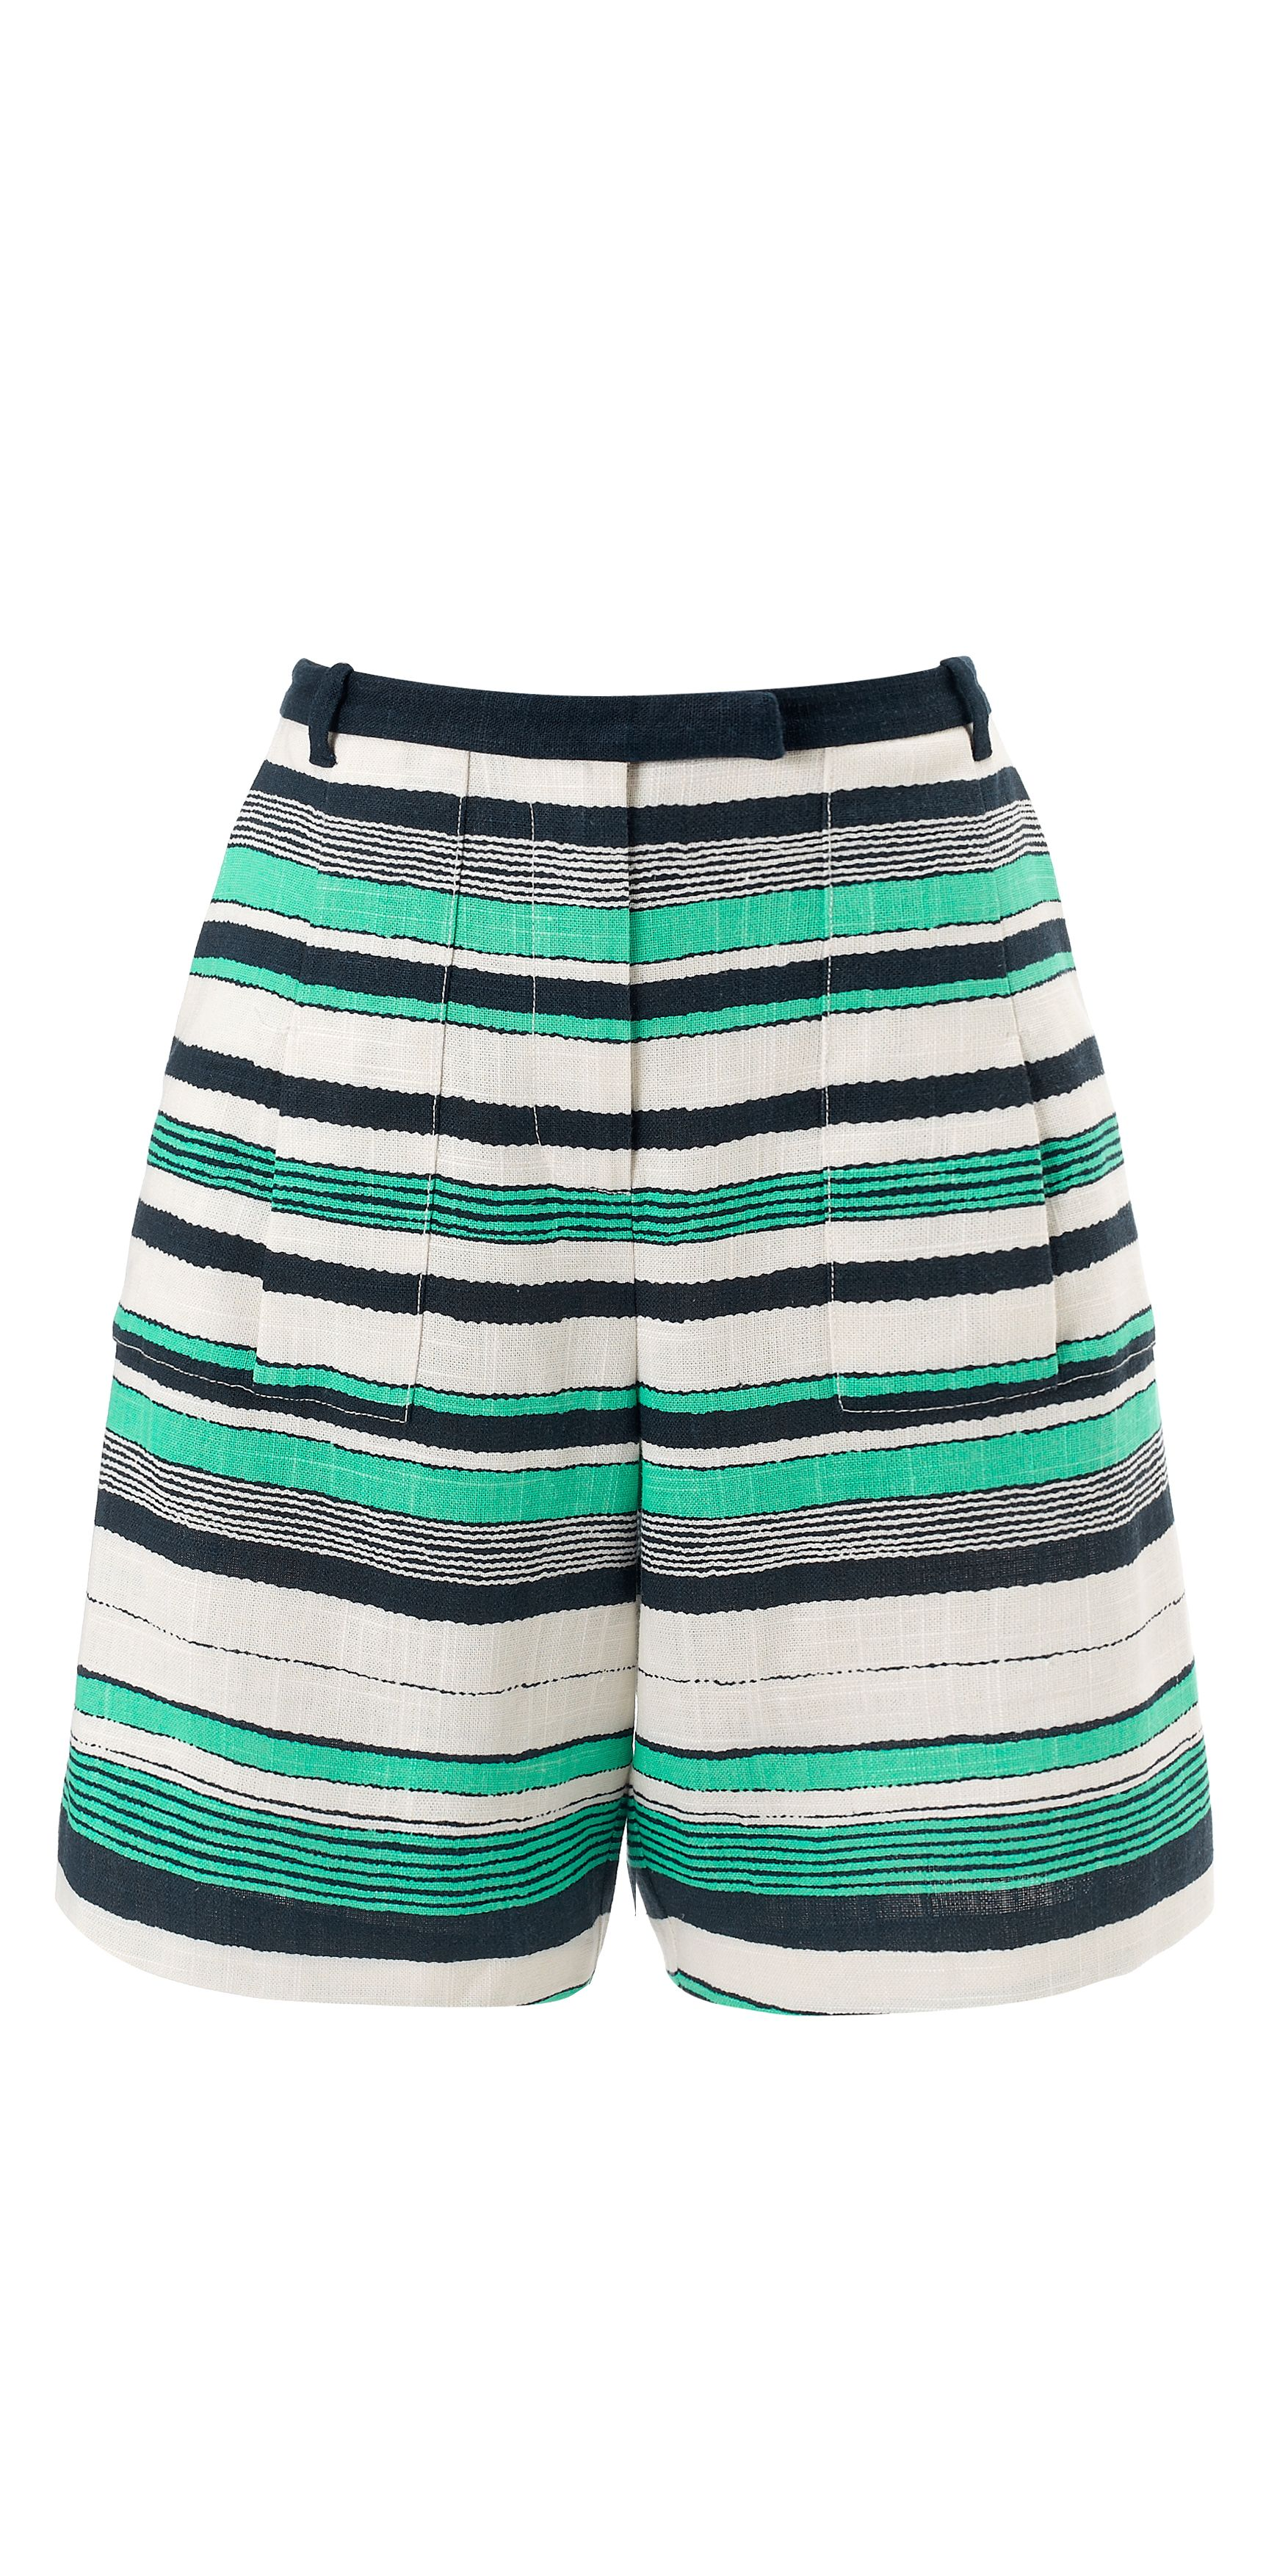 Painted linen stripe bermuda short